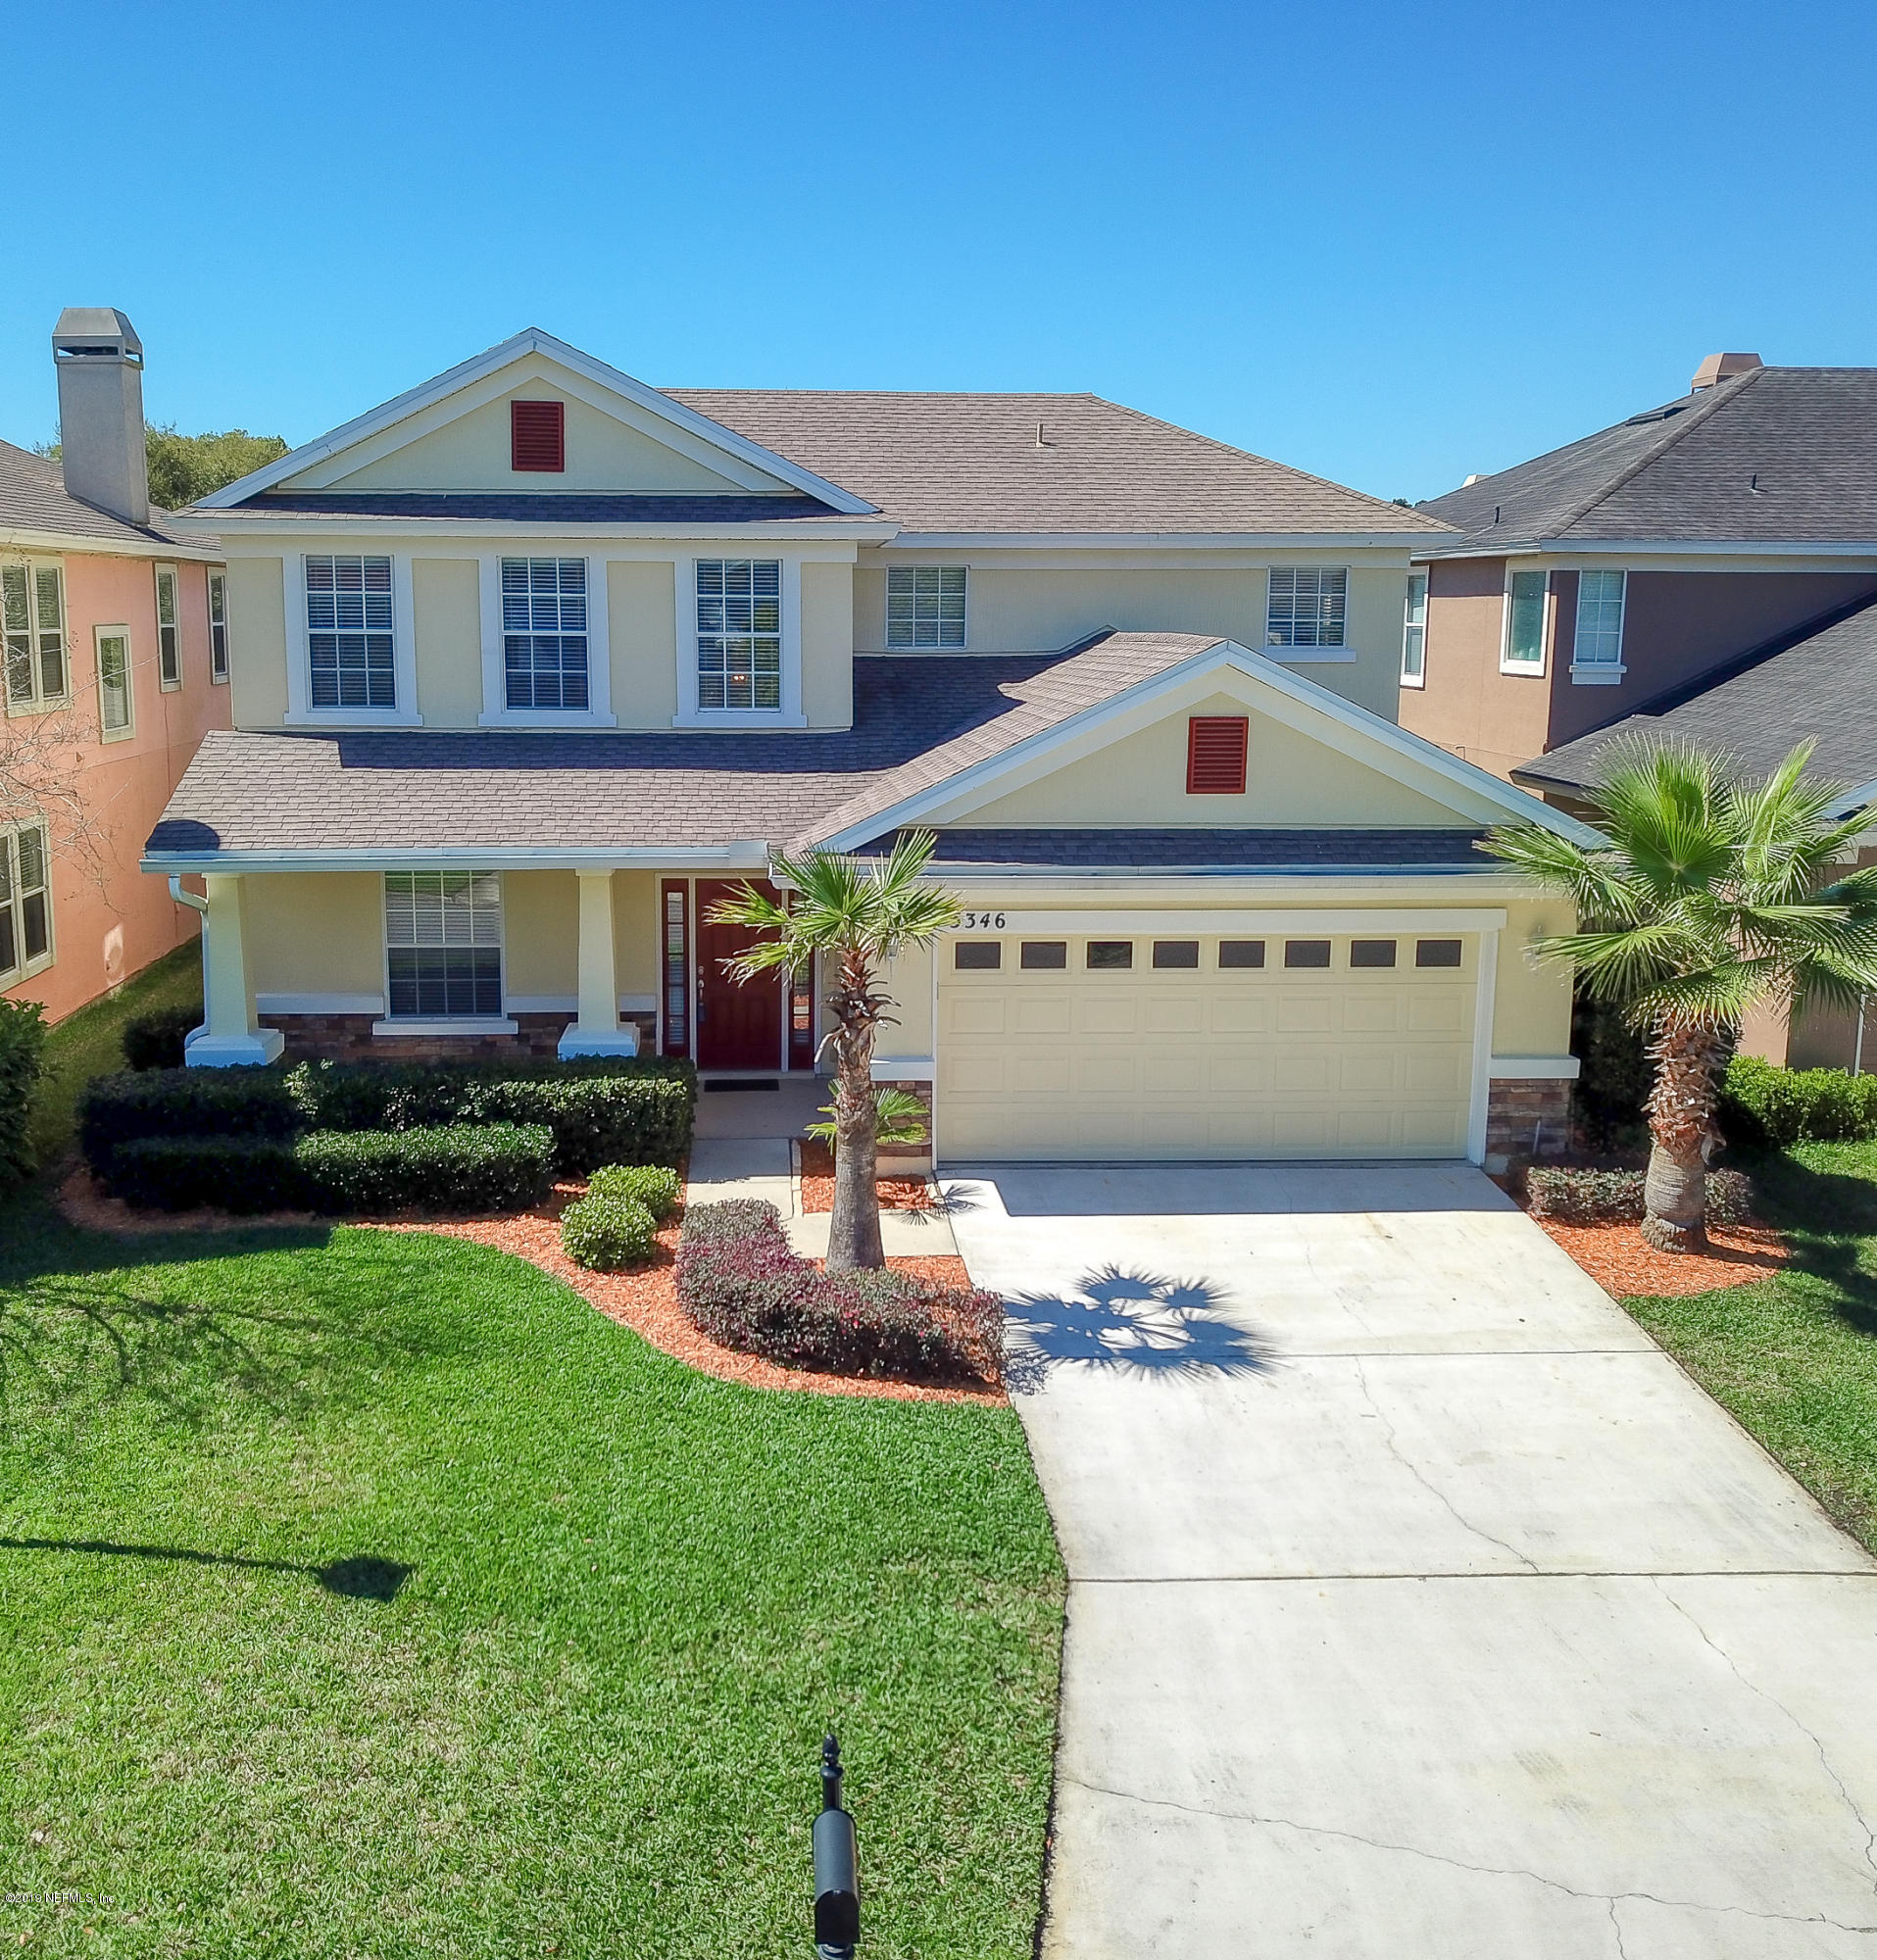 Photo of 3346 TURKEY CREEK, GREEN COVE SPRINGS, FL 32043